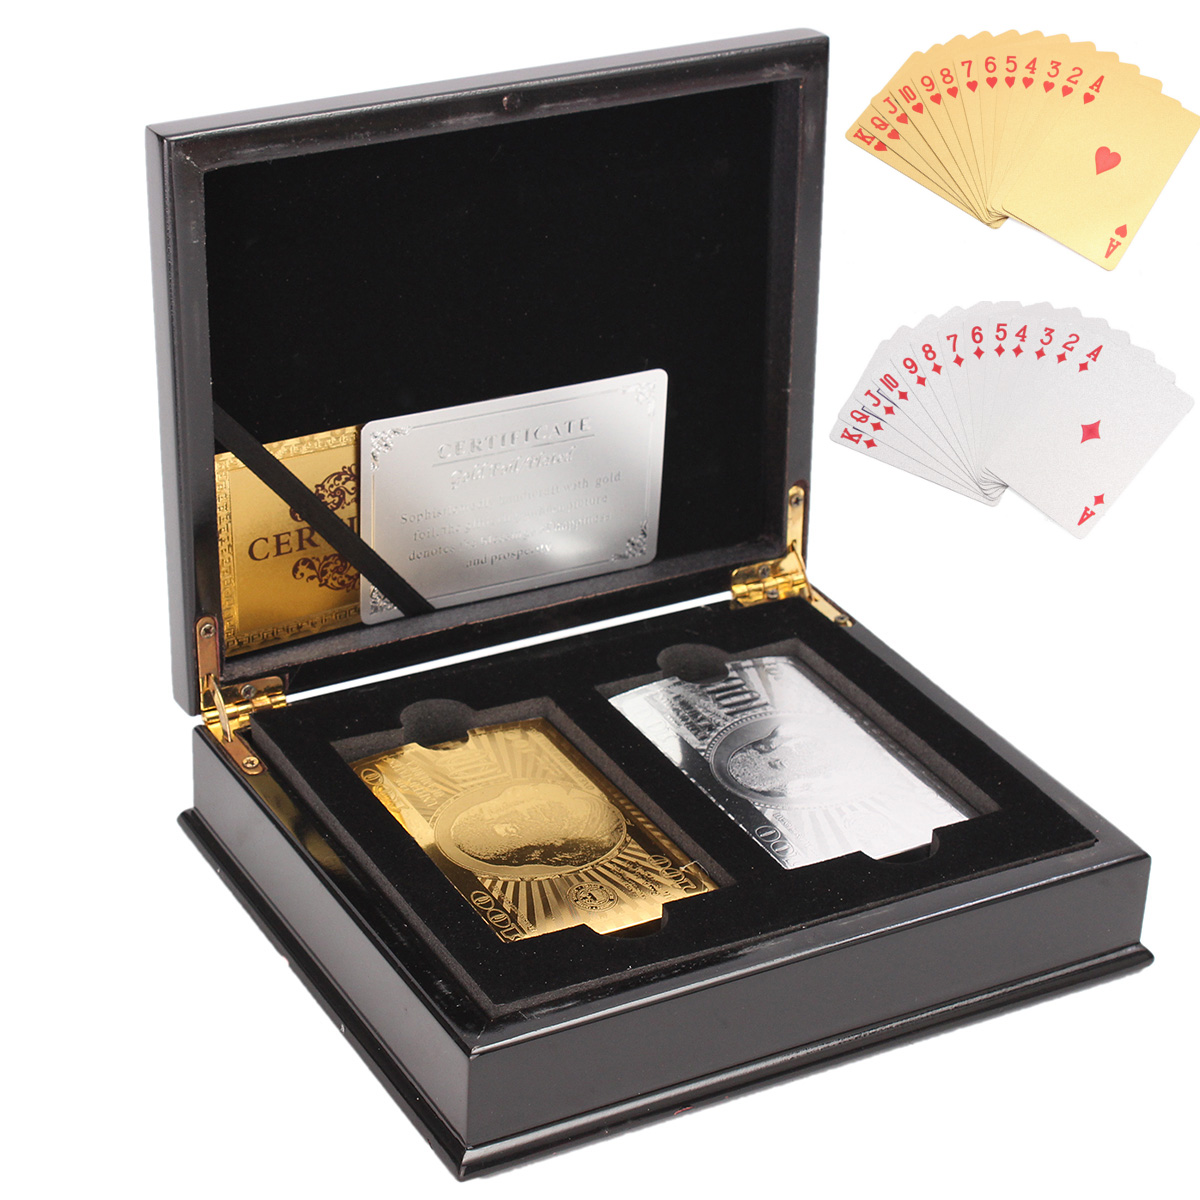 2 Set Sliver/Gold Board Game Foil Playing Cards Poker Gold Foil Plated Poker Card Funny With Wooden Box Gambling Pokerstars Gift